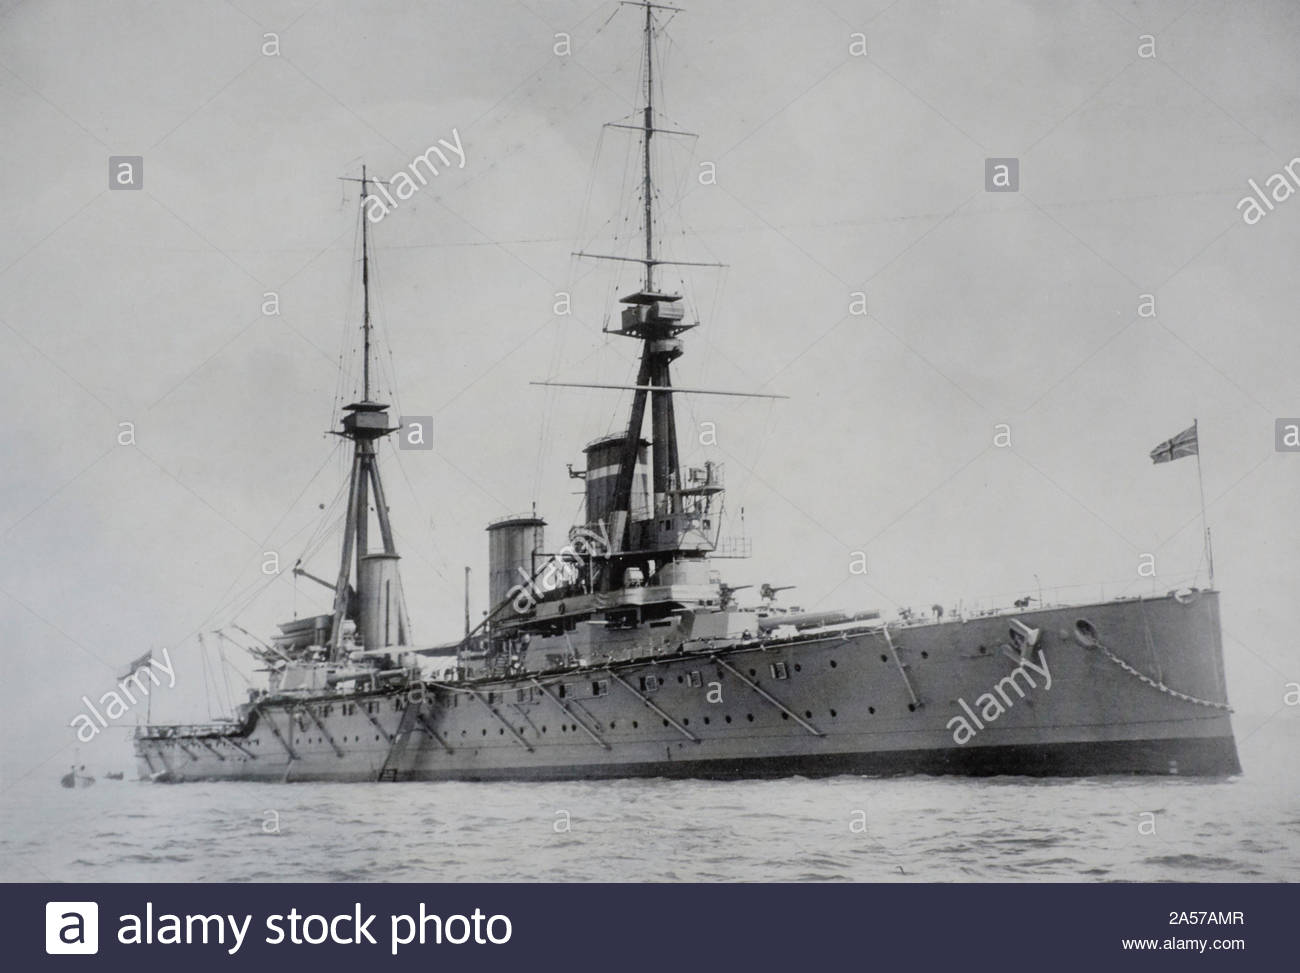 HMS Inflexible was a WW1 Invincible-class battlecruiser of the British Royal Navy,  the ship was launched in 1907 and scrapped in 1922 vintage photograph early 1900s Stock Photo